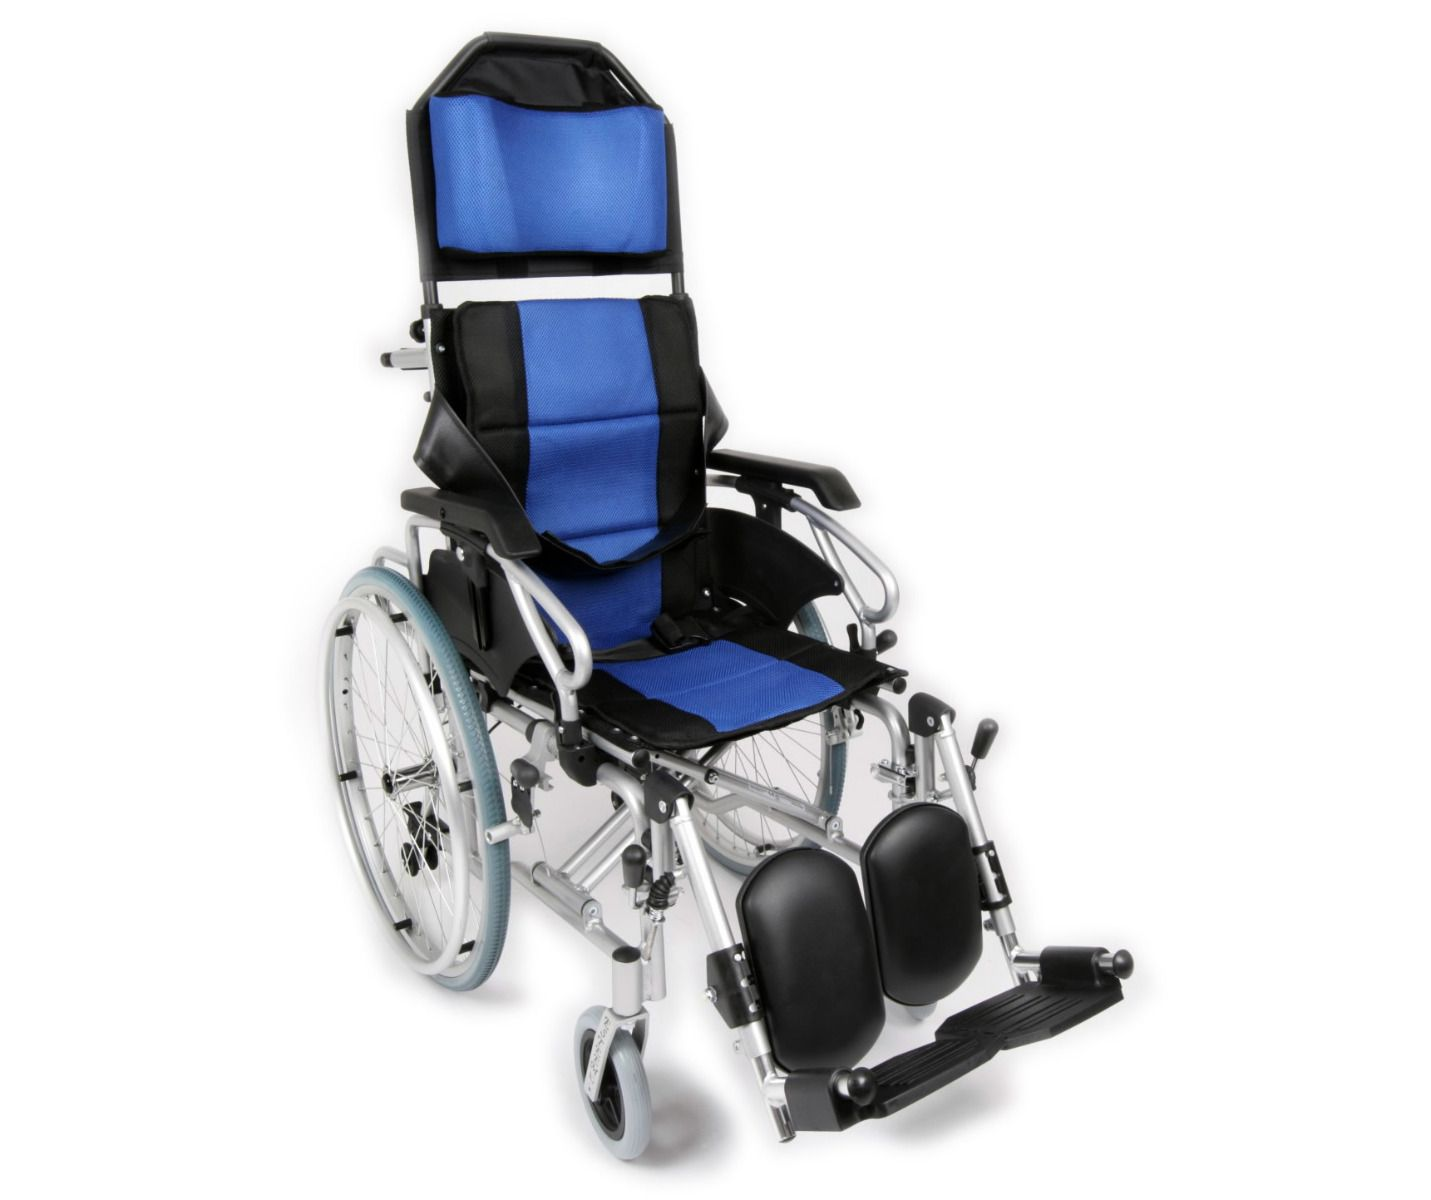 Reclining self propelled wheelchair viewed from the side angle